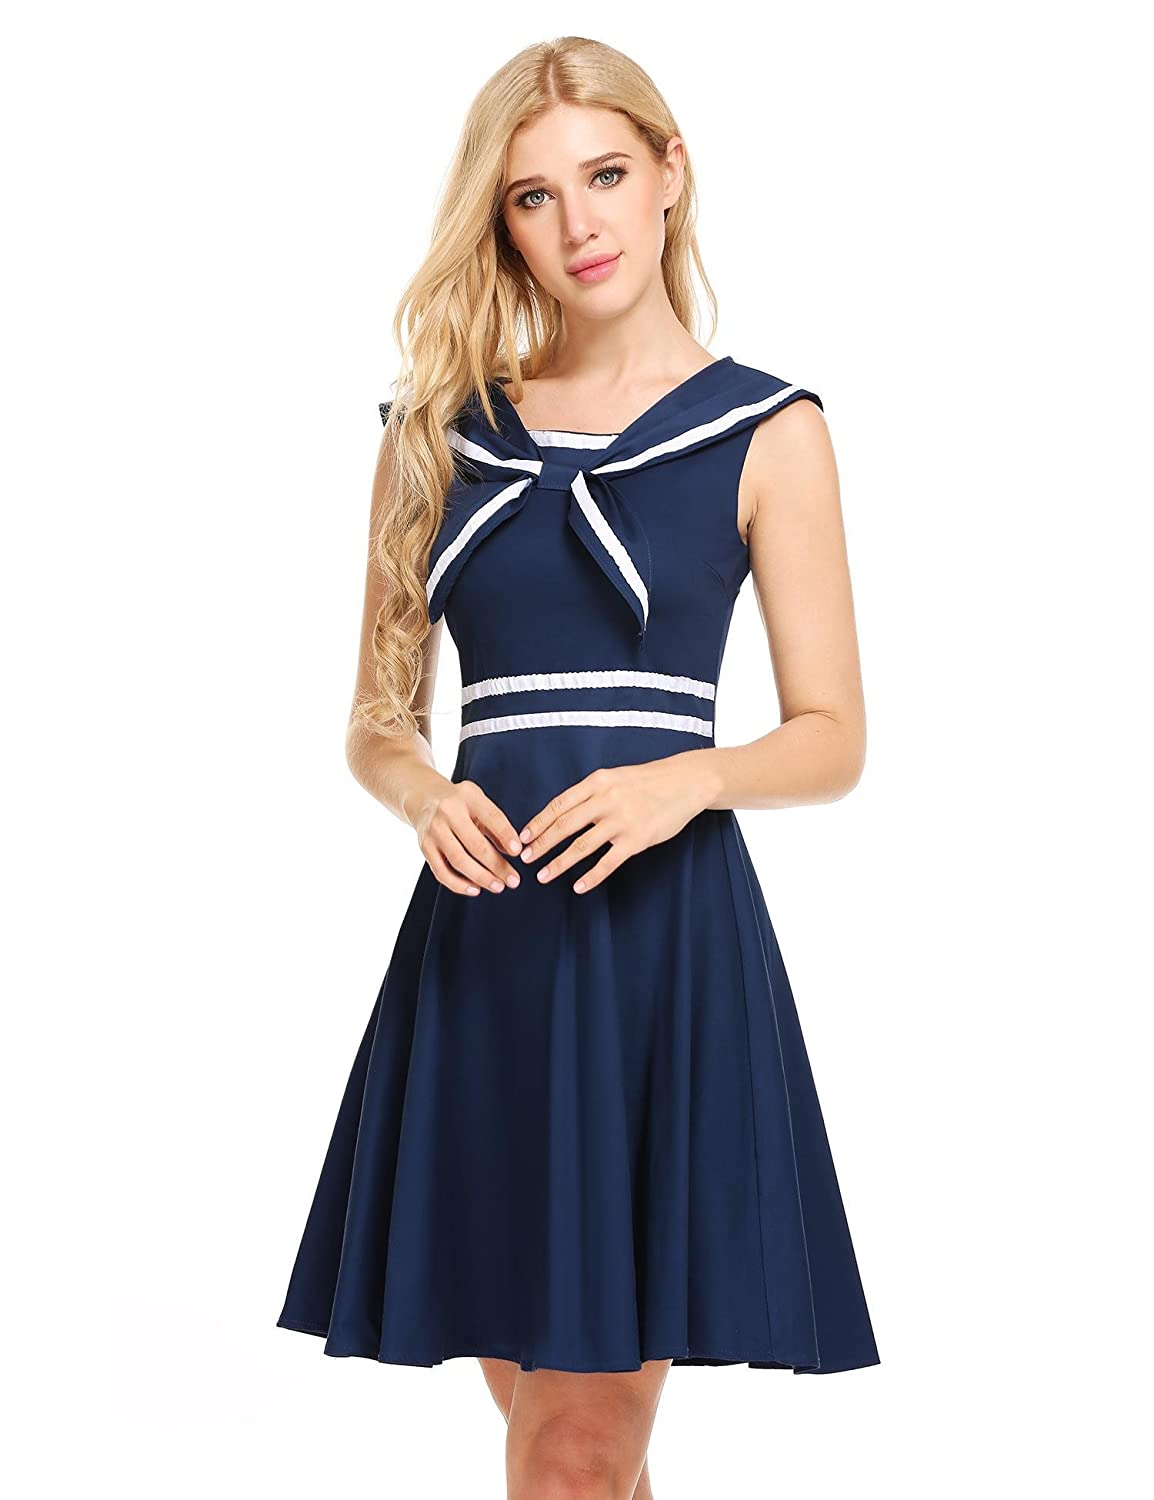 1920s Tennis Clothes | Womens and Men's Outfits ACEVOG Womens Sleeveless 50s Vintage School Uniform Flare Retro Sailor Dress $34.99 AT vintagedancer.com